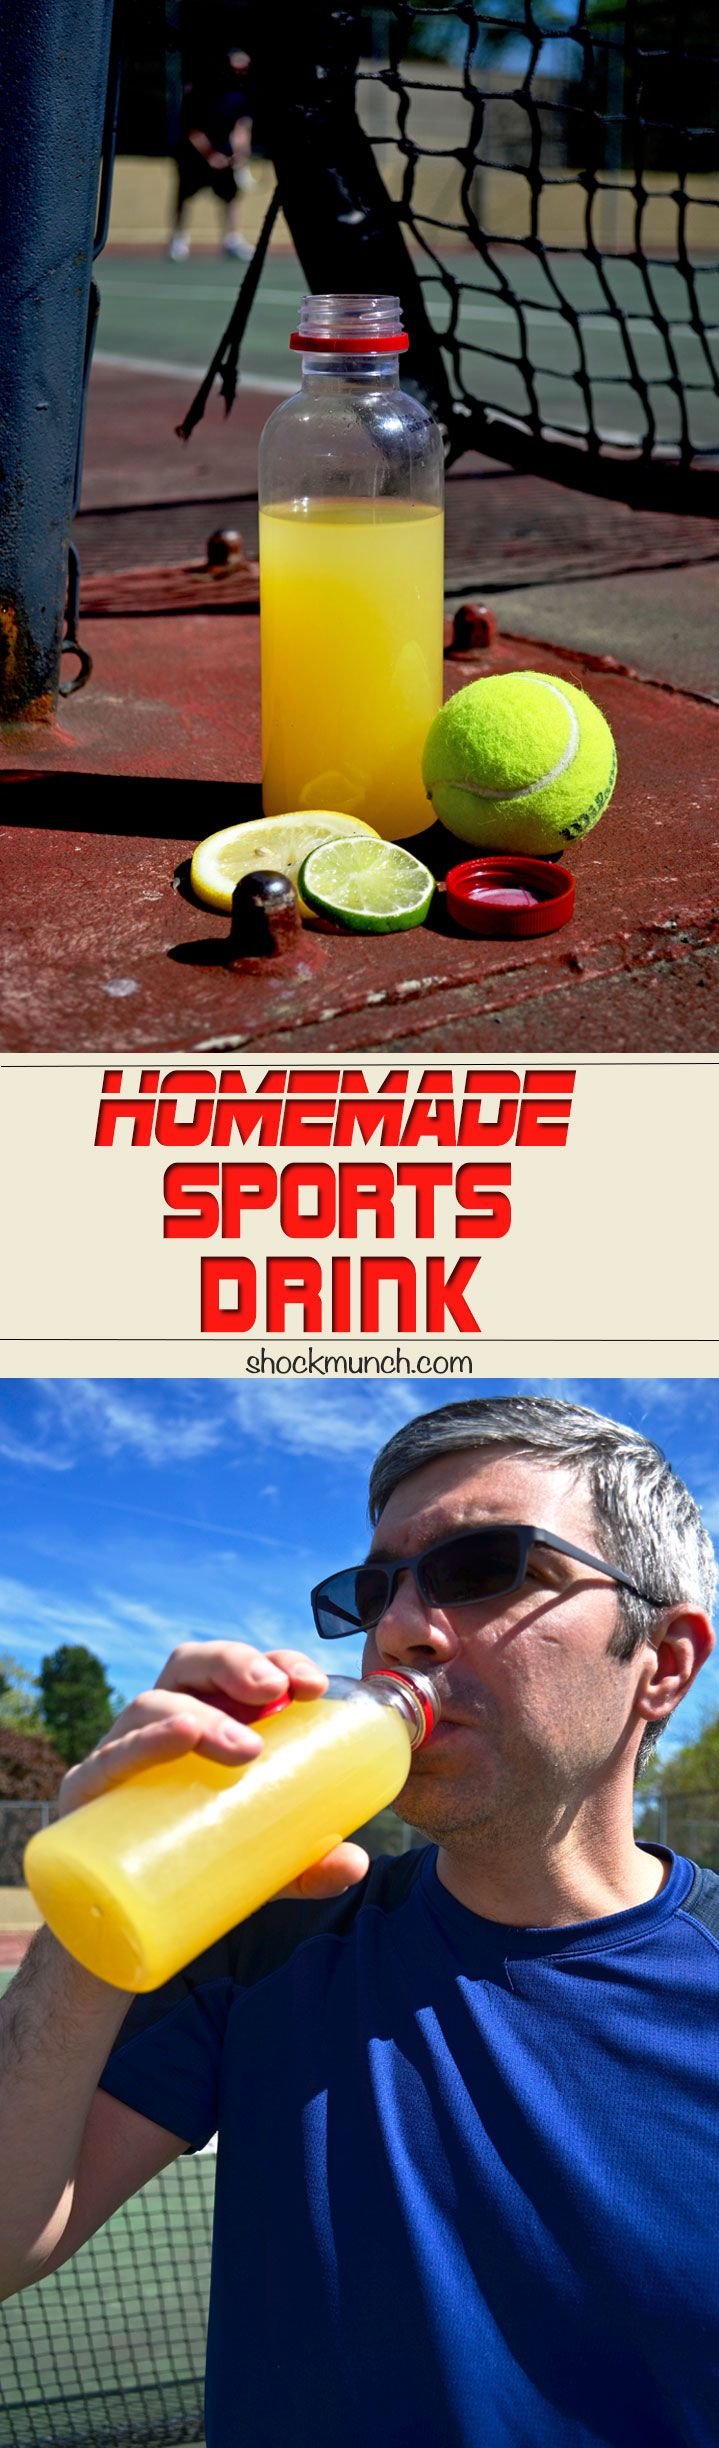 This week I want share my Homemade Sports Drink recipe with you! If you love Gatorade but it's sugar content makes you nervous, whip up a batch of this healthier, all natural, Homemade Sports Drink instead! I love having a bottle of my Homemade Sports Drink handy after a rigorous workout. Our apartment complex has [...]